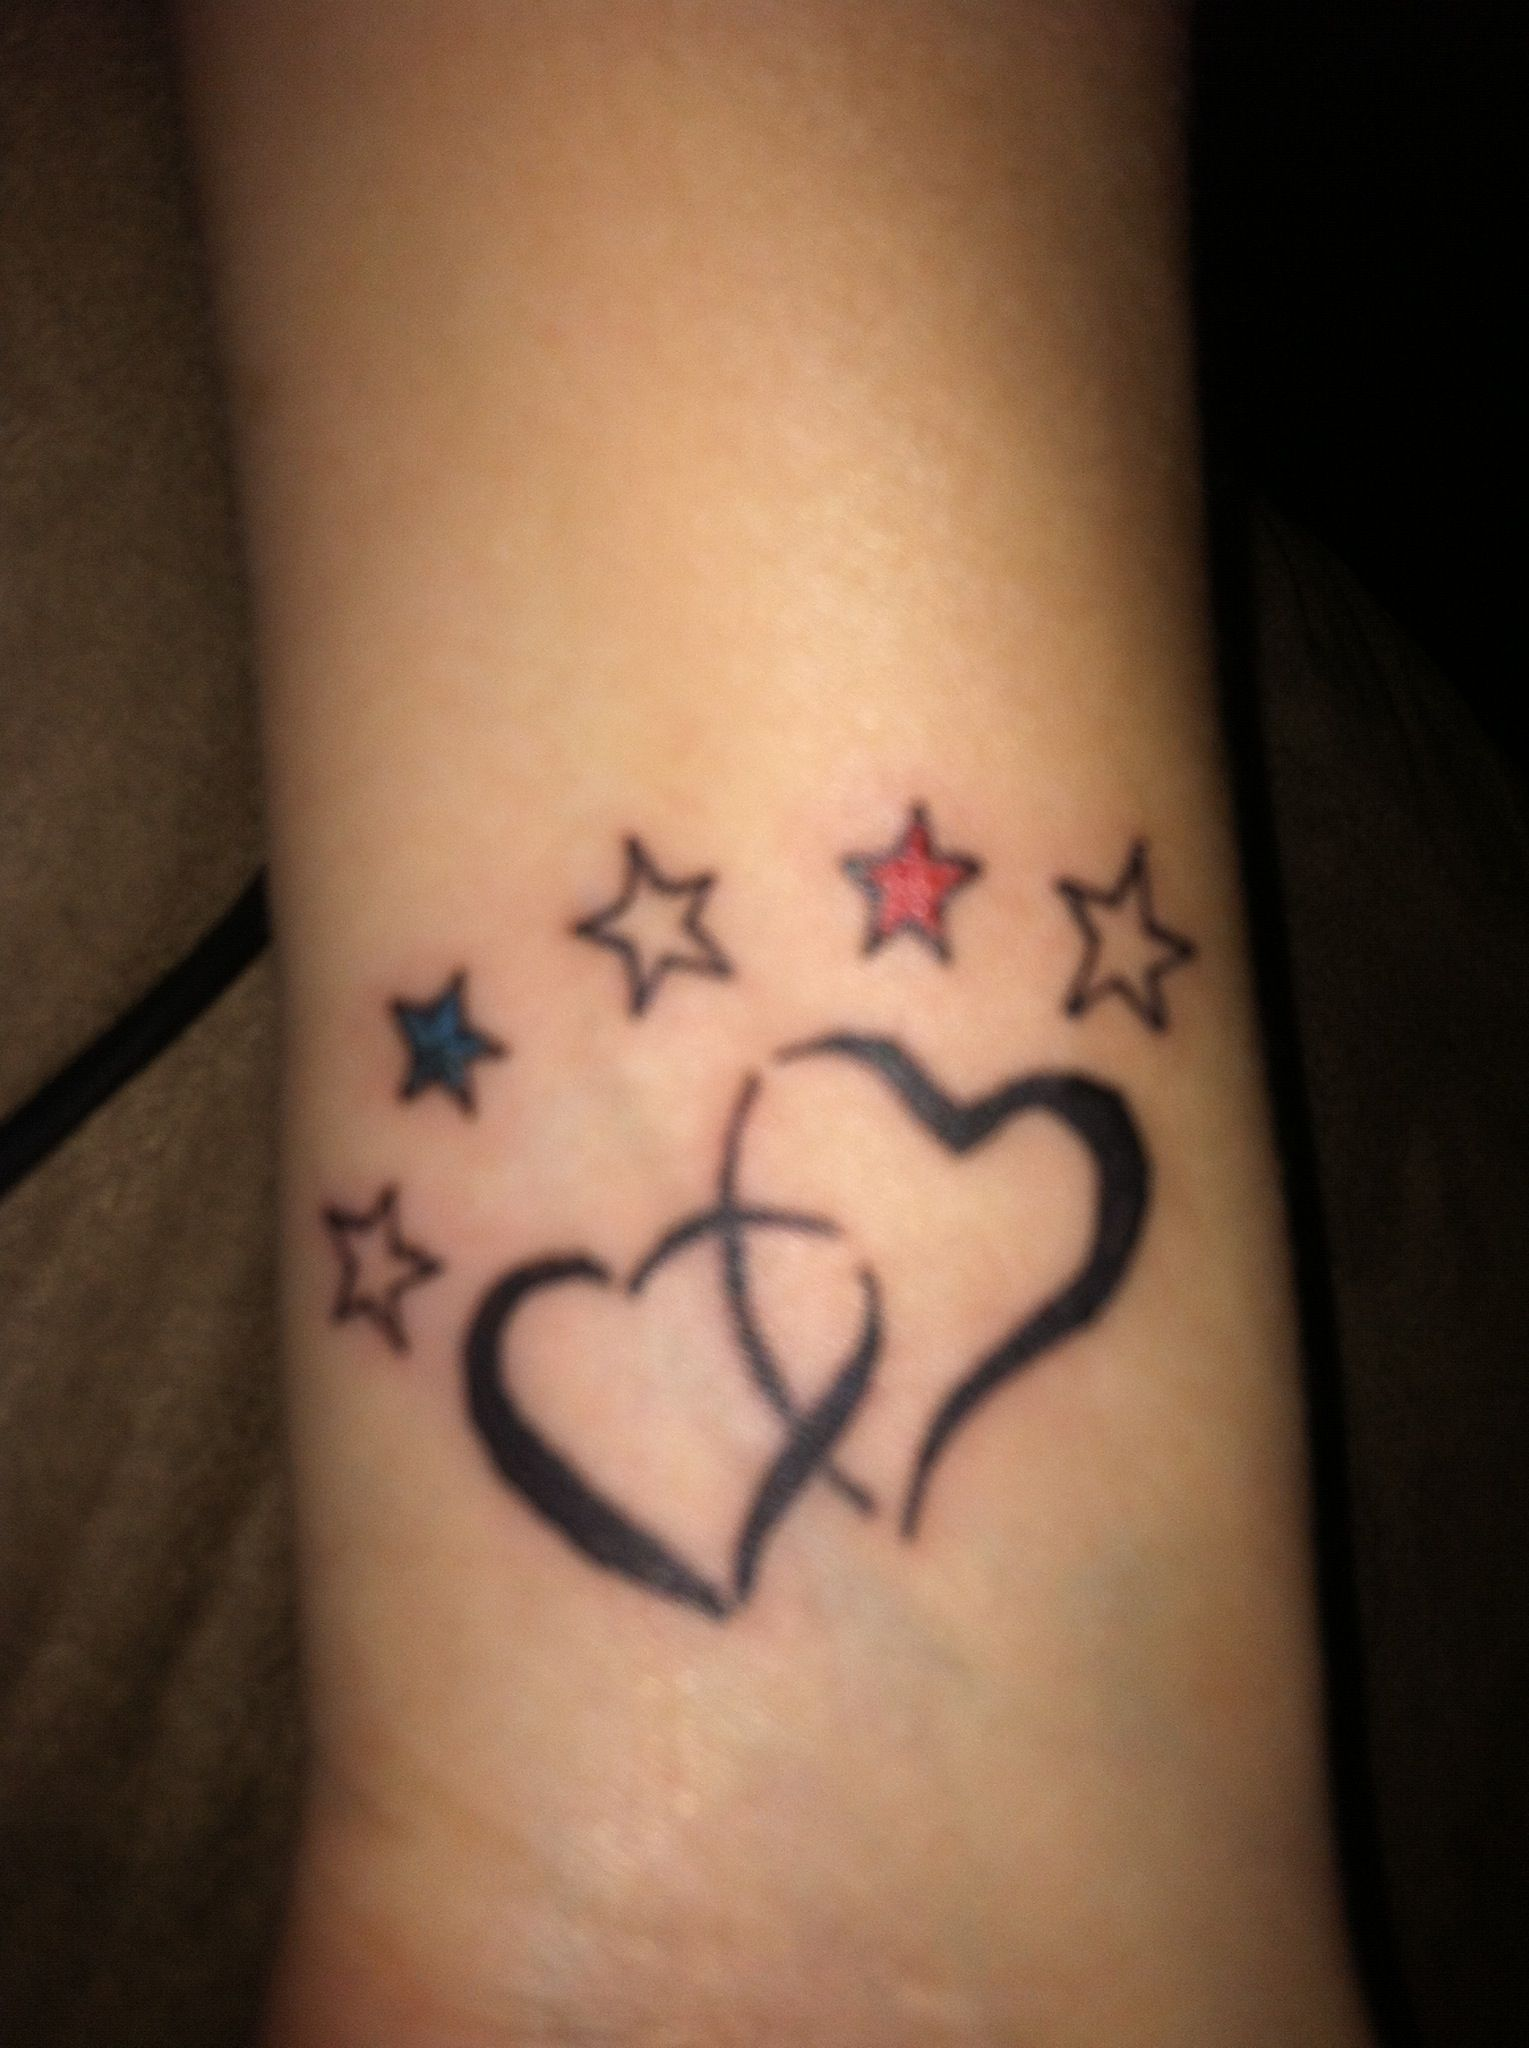 my wrist tattoo our hearts joined together by our faith five stars to represent our children. Black Bedroom Furniture Sets. Home Design Ideas